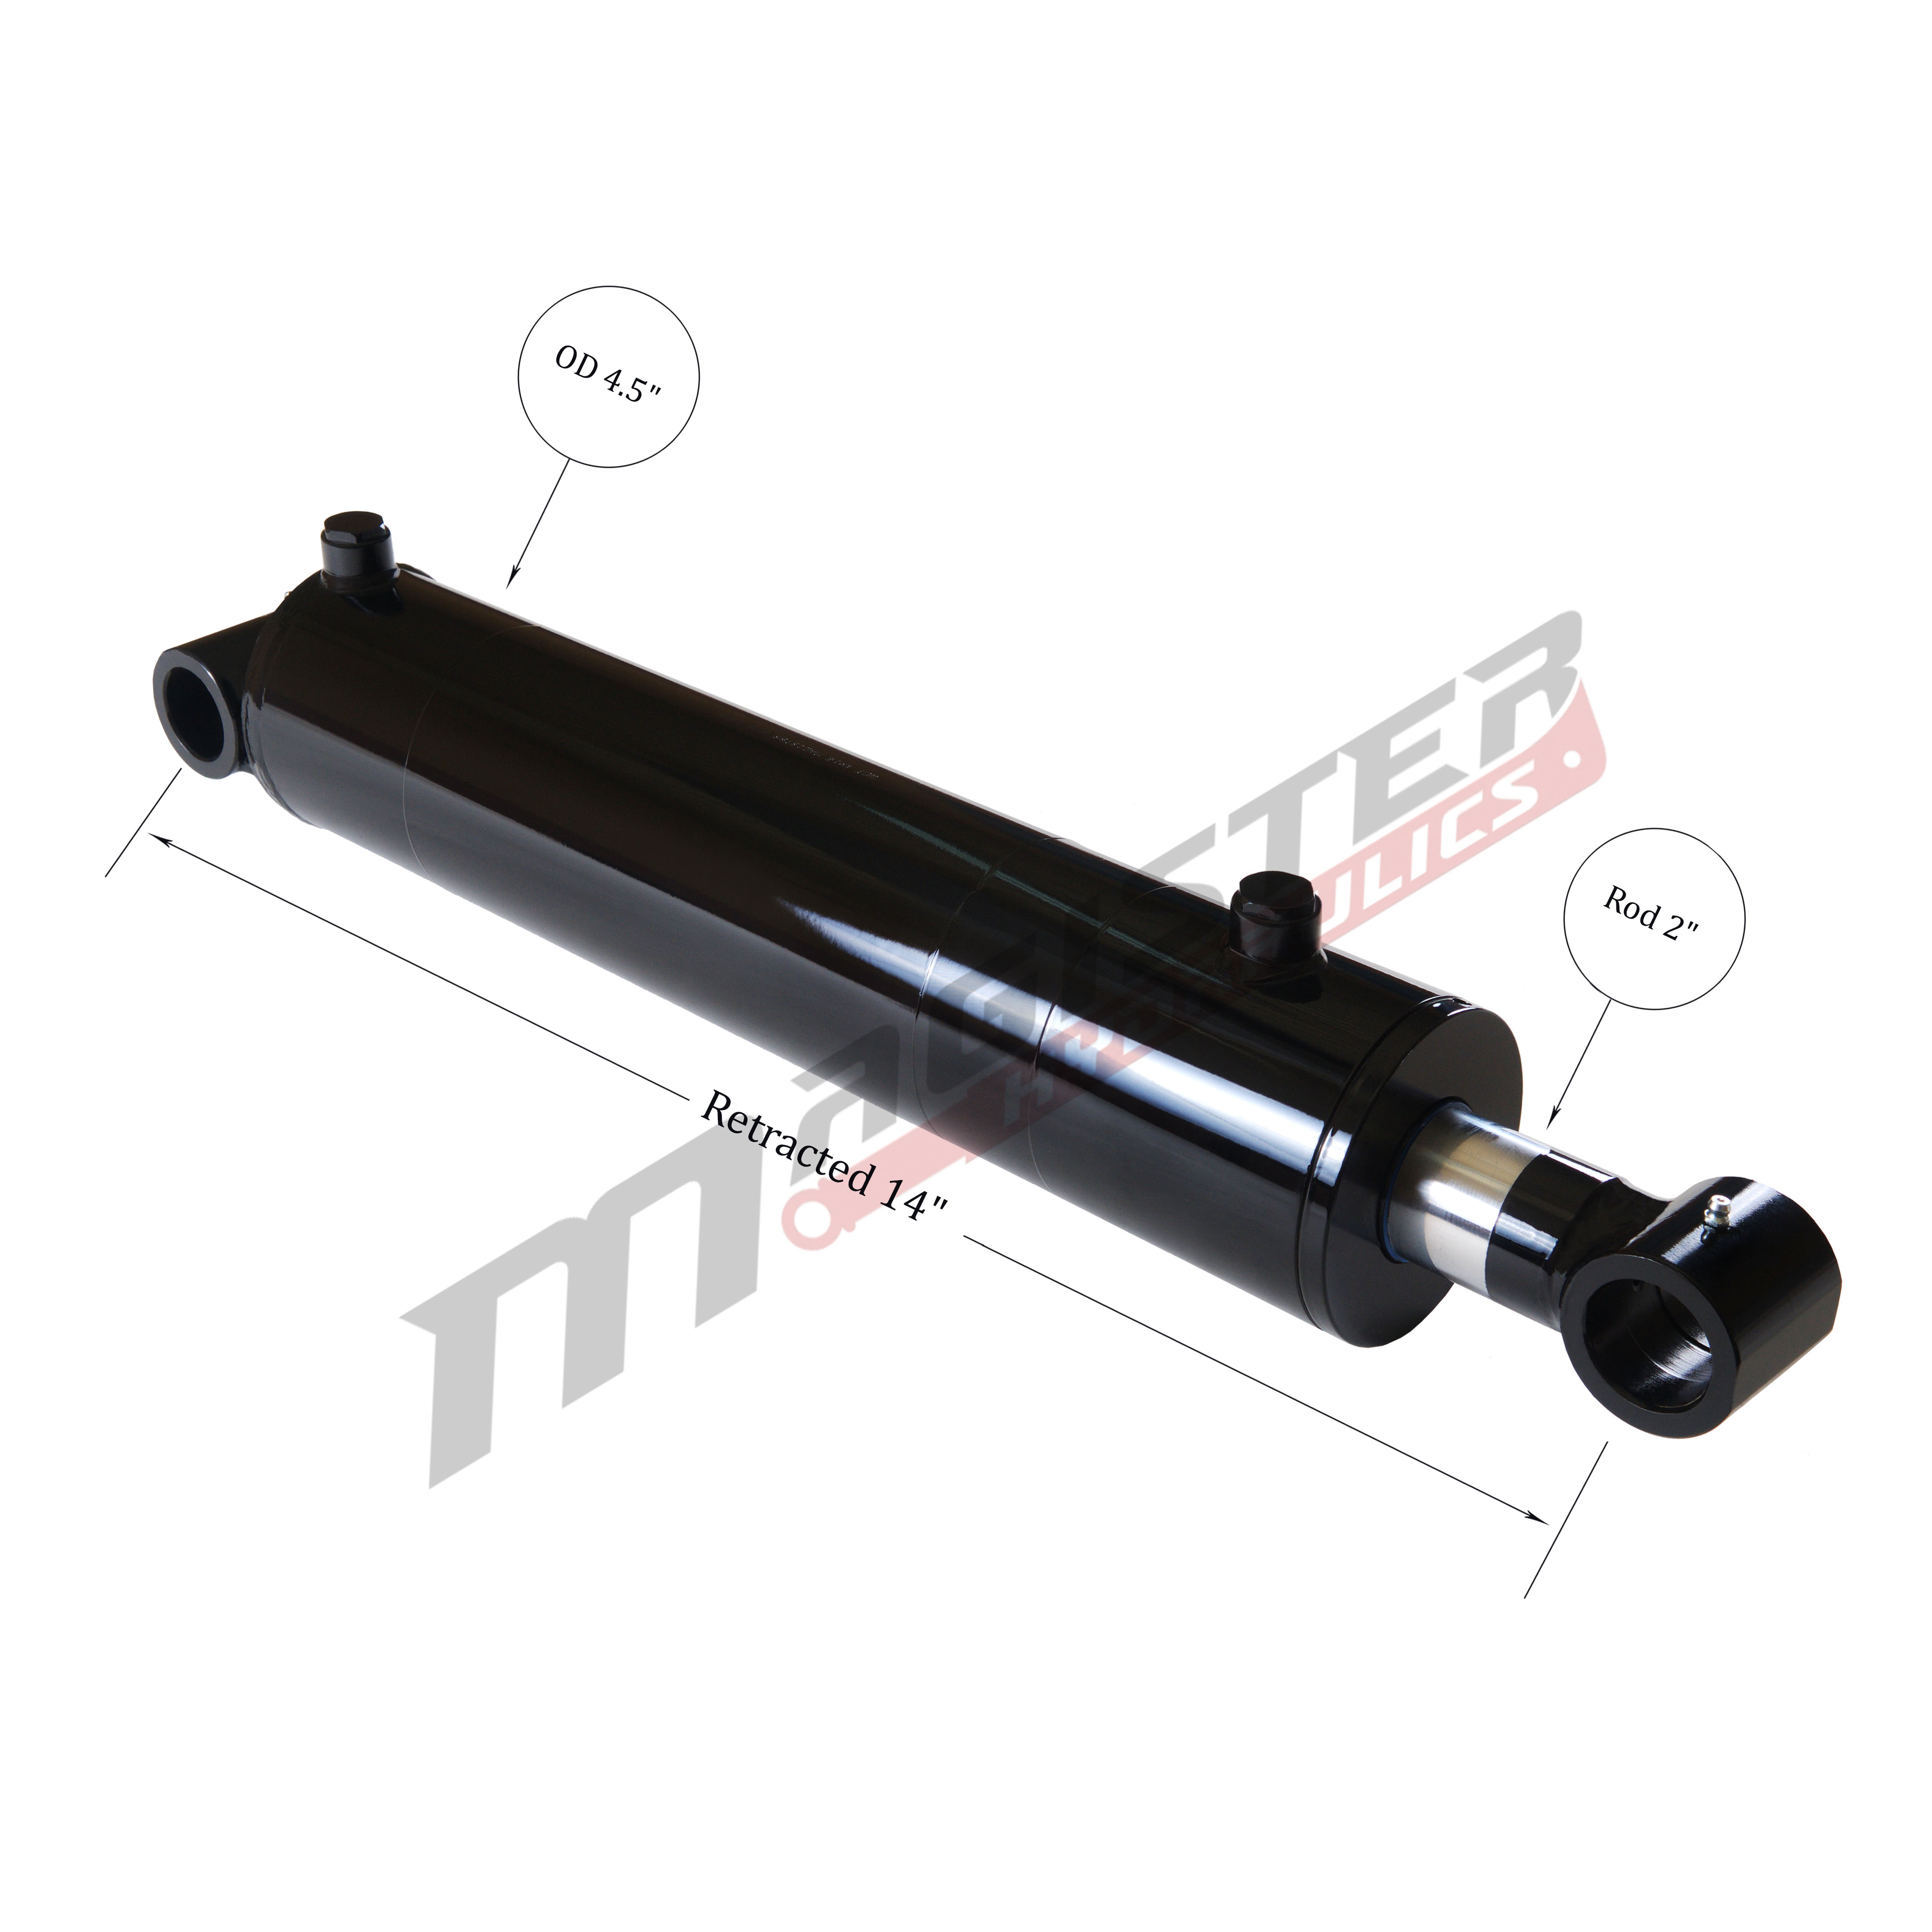 4 bore x 4 stroke hydraulic cylinder, welded cross tube double acting cylinder | Magister Hydraulics